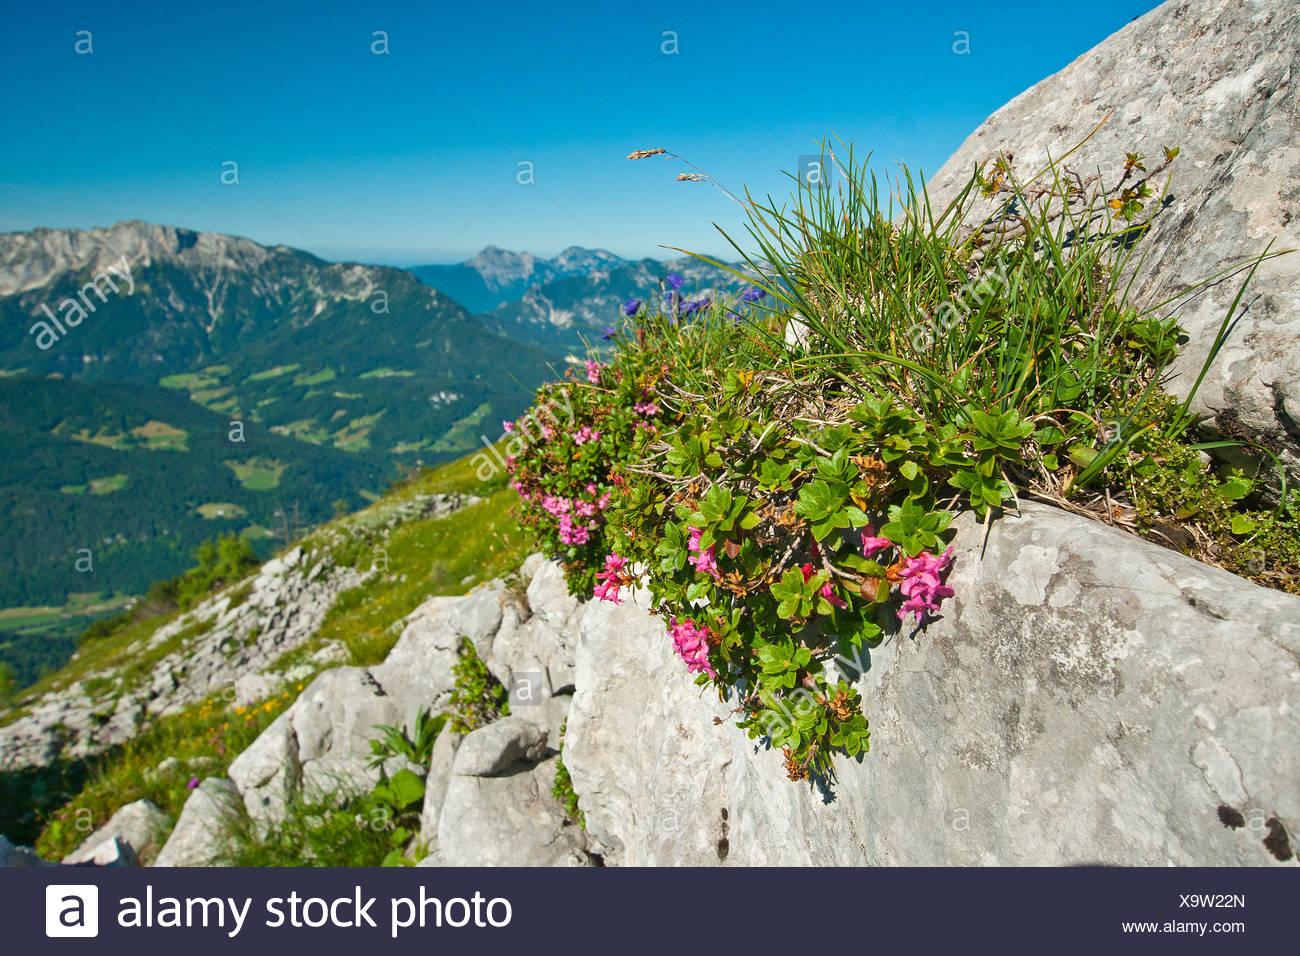 Europe Germany Bavaria Germany Upper Bavaria Berchtesgaden country Kehlstein flower mountain flower mountains mountain pasture - Stock Image